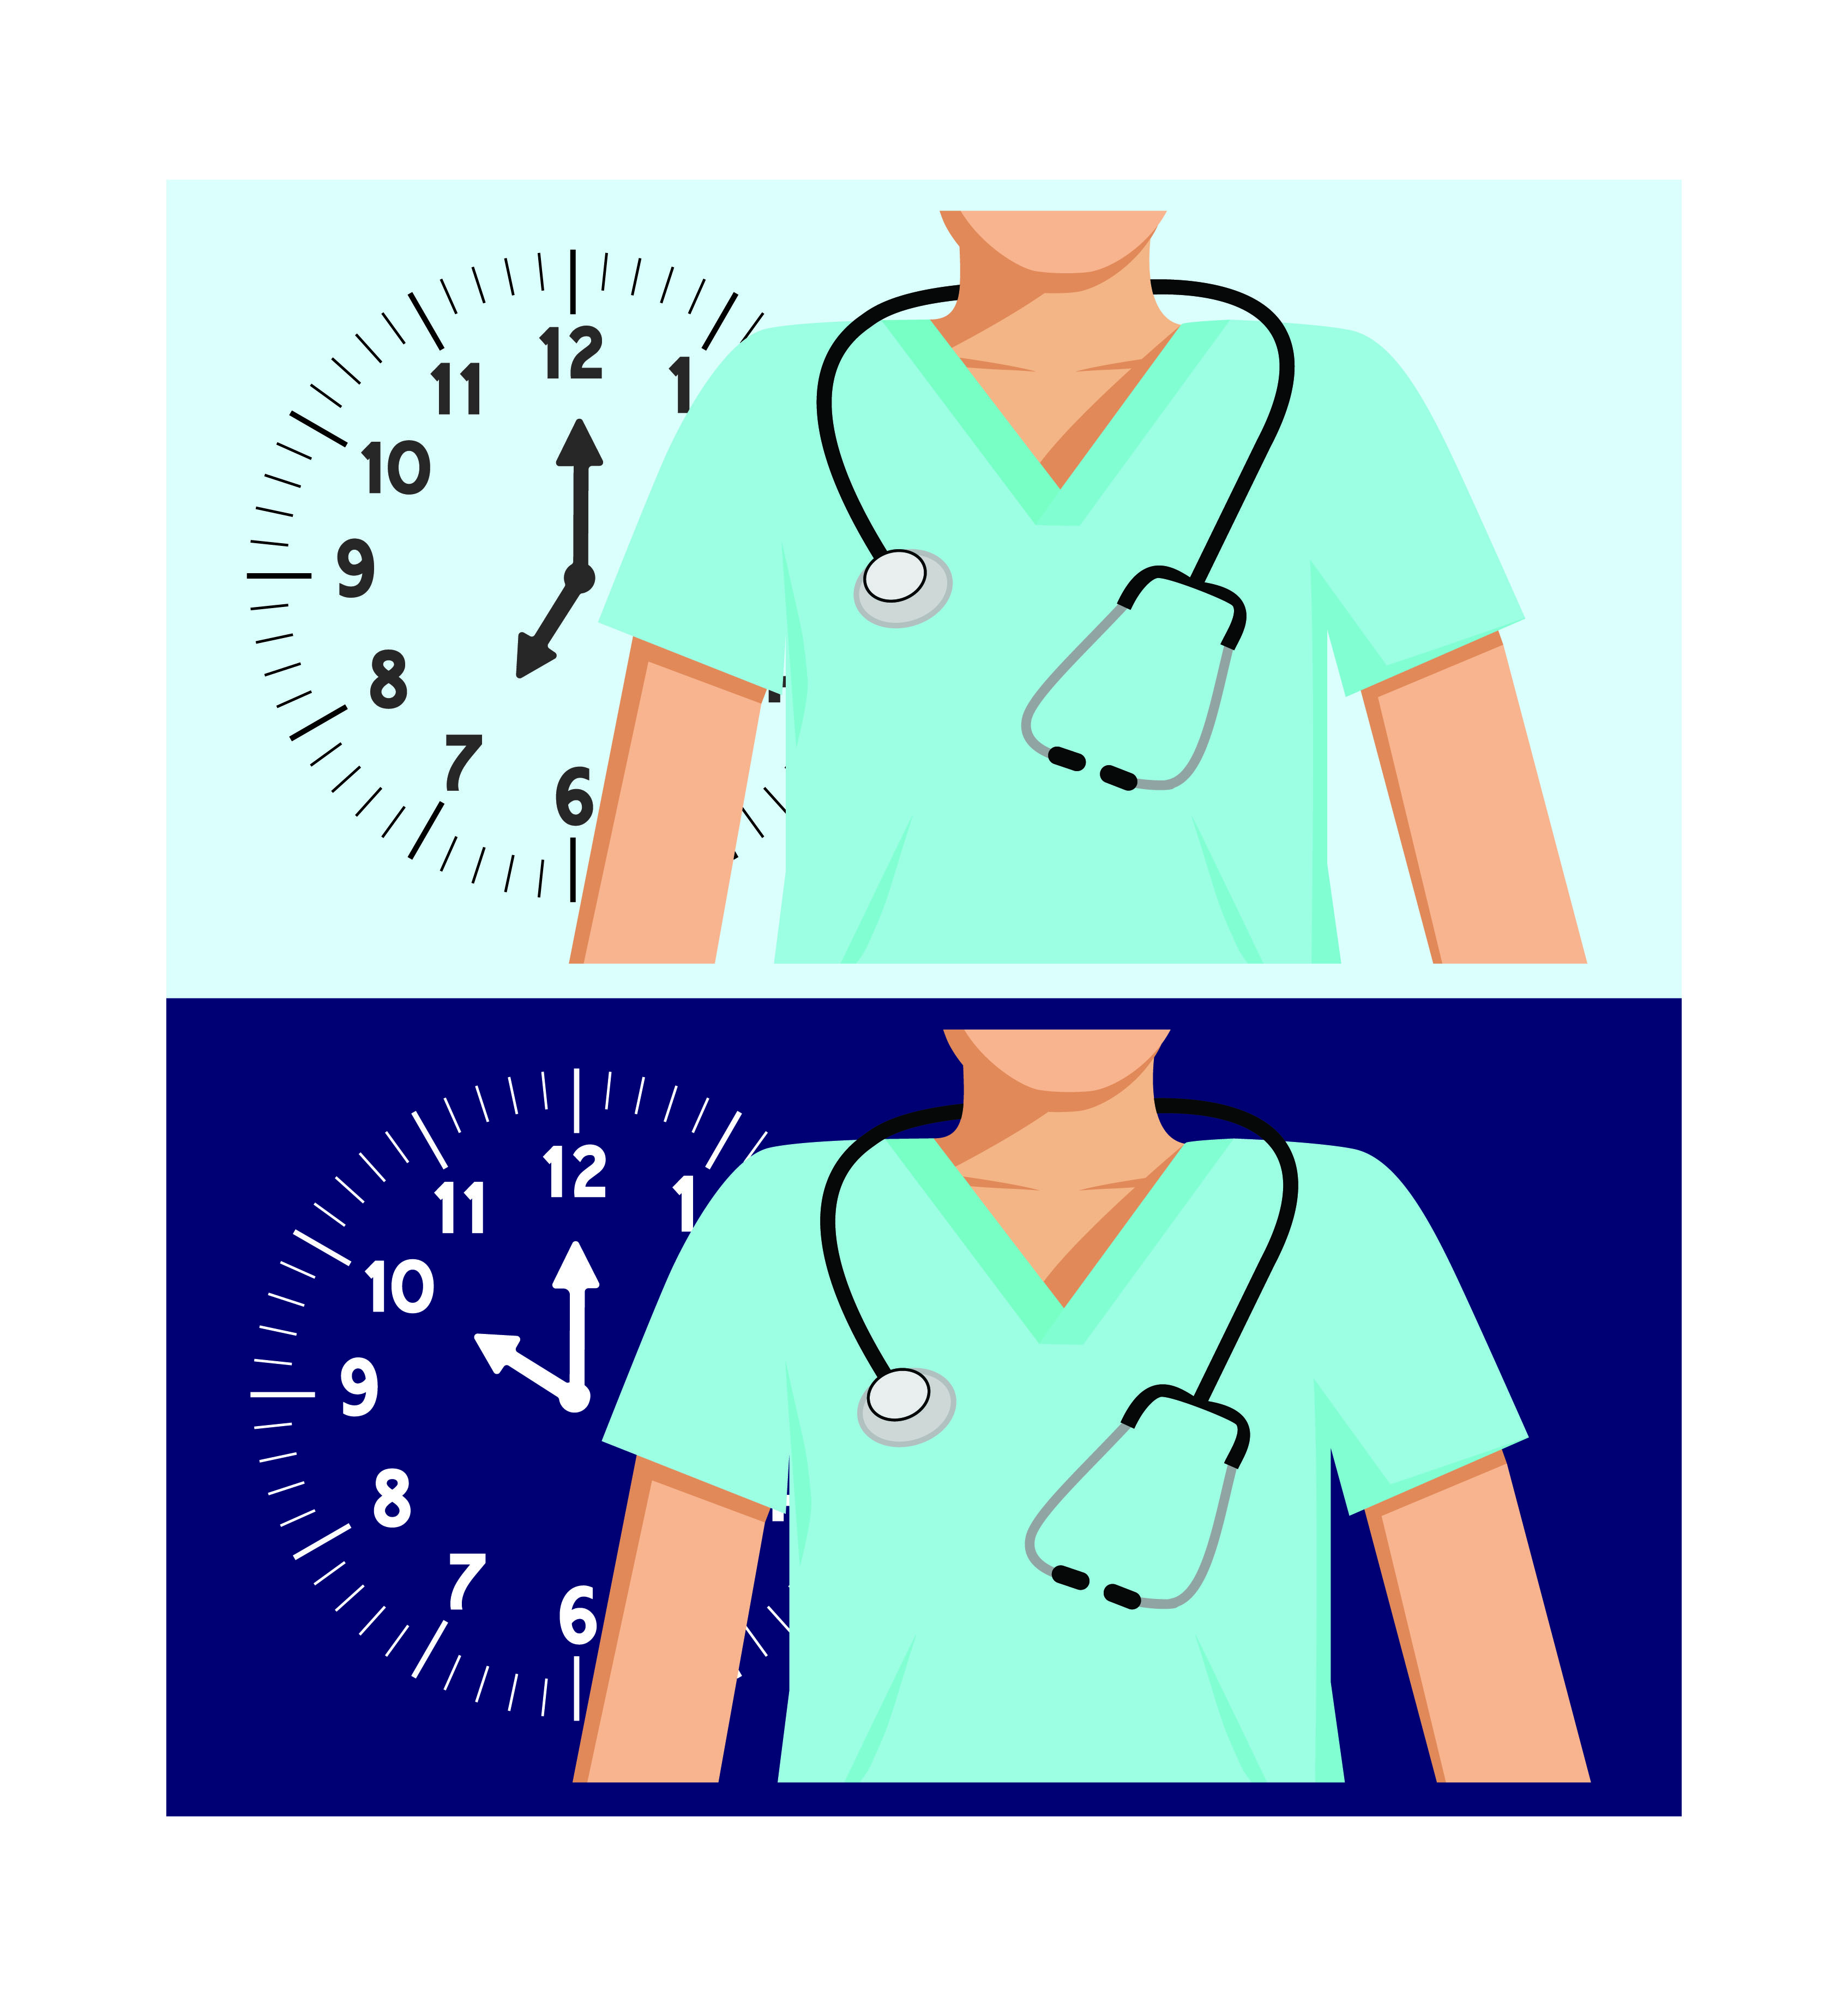 Wsu environmental health safety environmental health -  A Nurse S Performance More Than Working A 12 Hour Day Shift Does According To A Recent Study By Marian Wilson Ph D An Assistant Professor At The Wsu